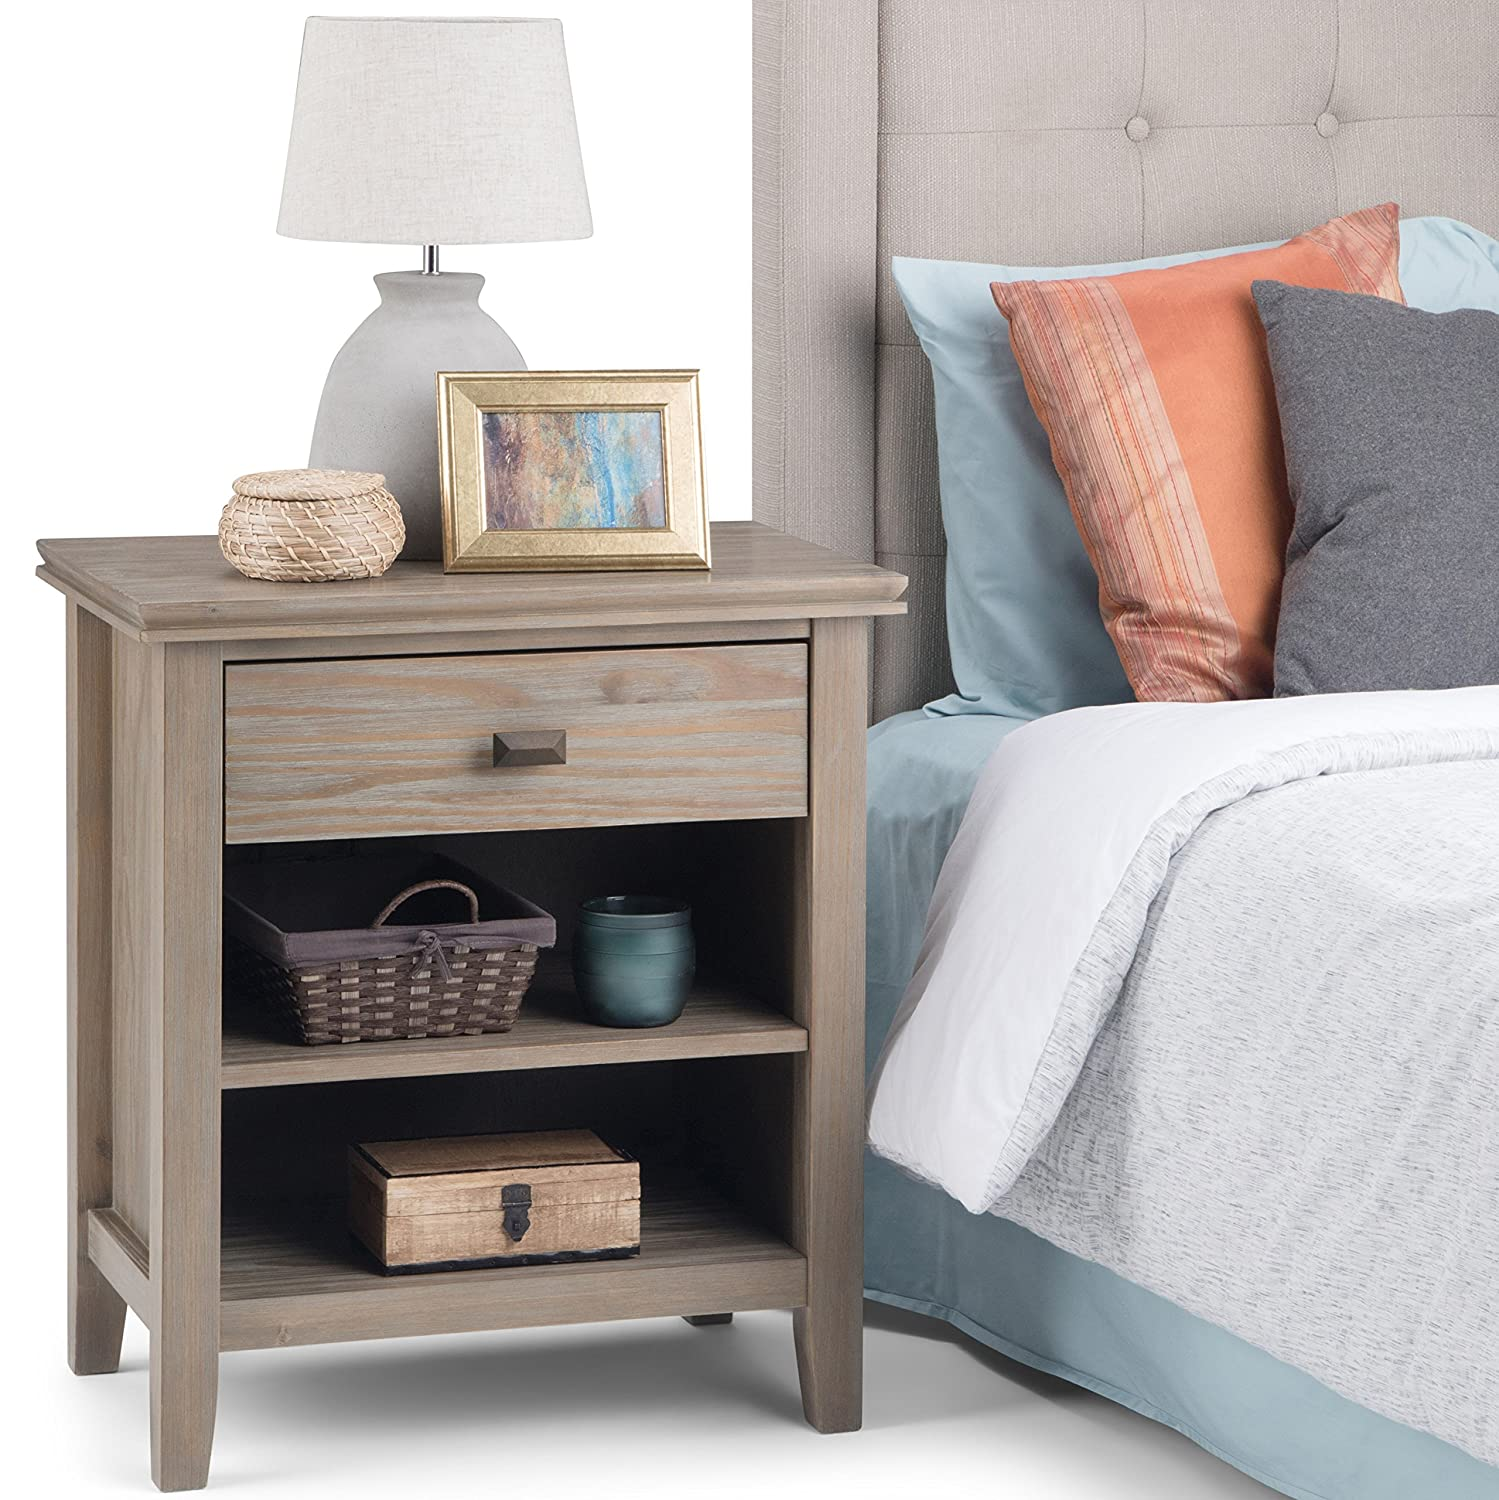 Simpli Home 3AXCART-02GR Artisan Solid Wood 24 inch Wide Contemporary Bedside Nightstand Table in Distressed Grey